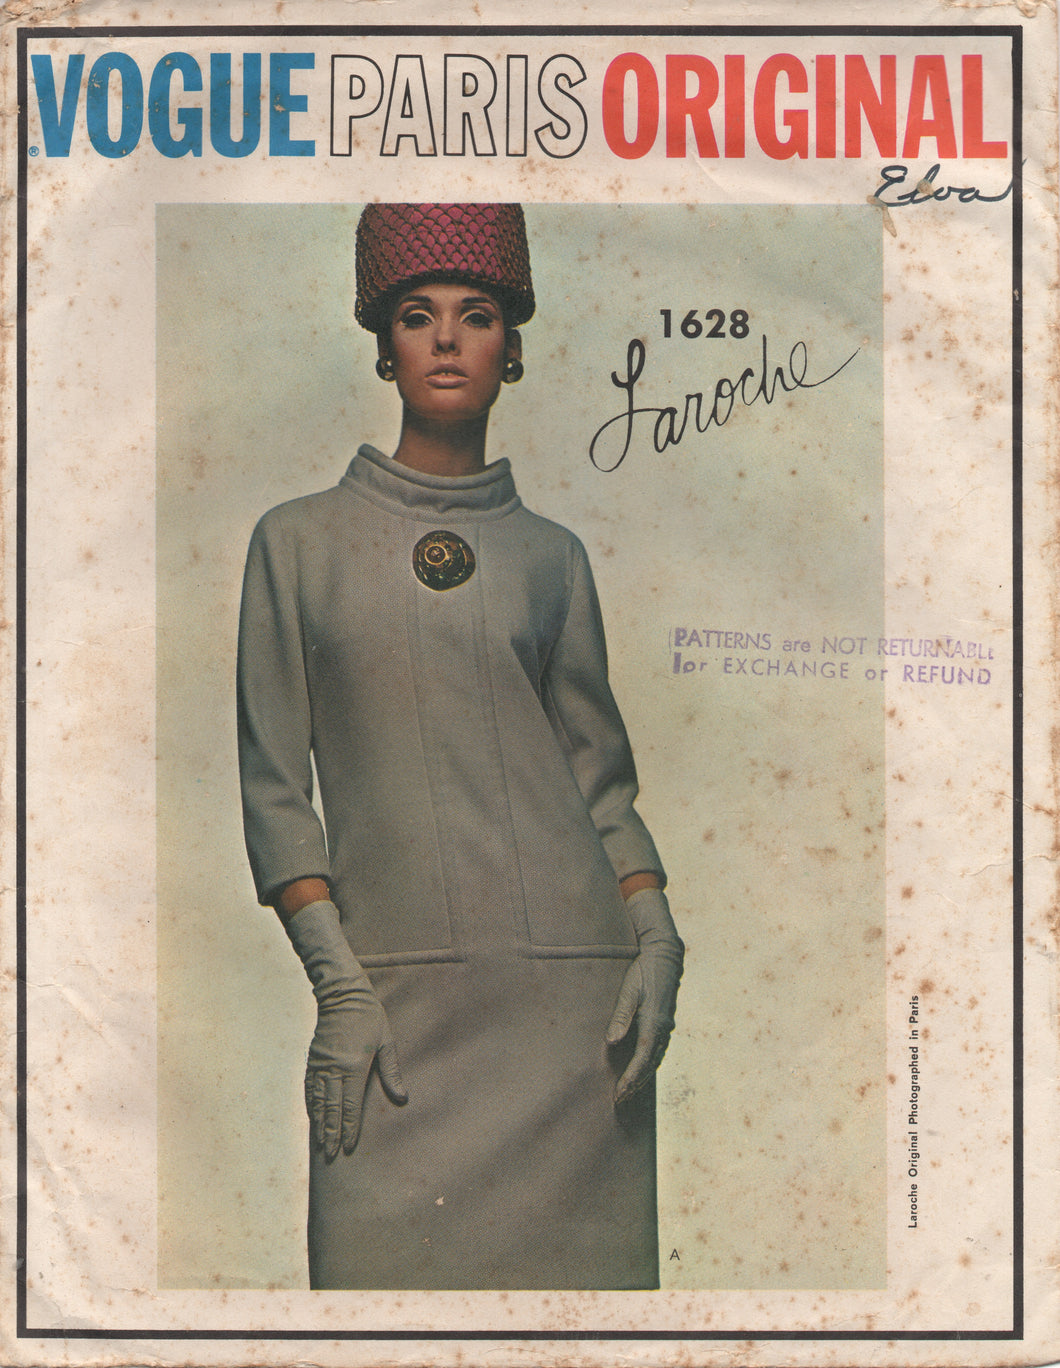 1960's Vogue Paris Original Mod One Piece Dress with Loose Fitting Bodice - Bust 32.5